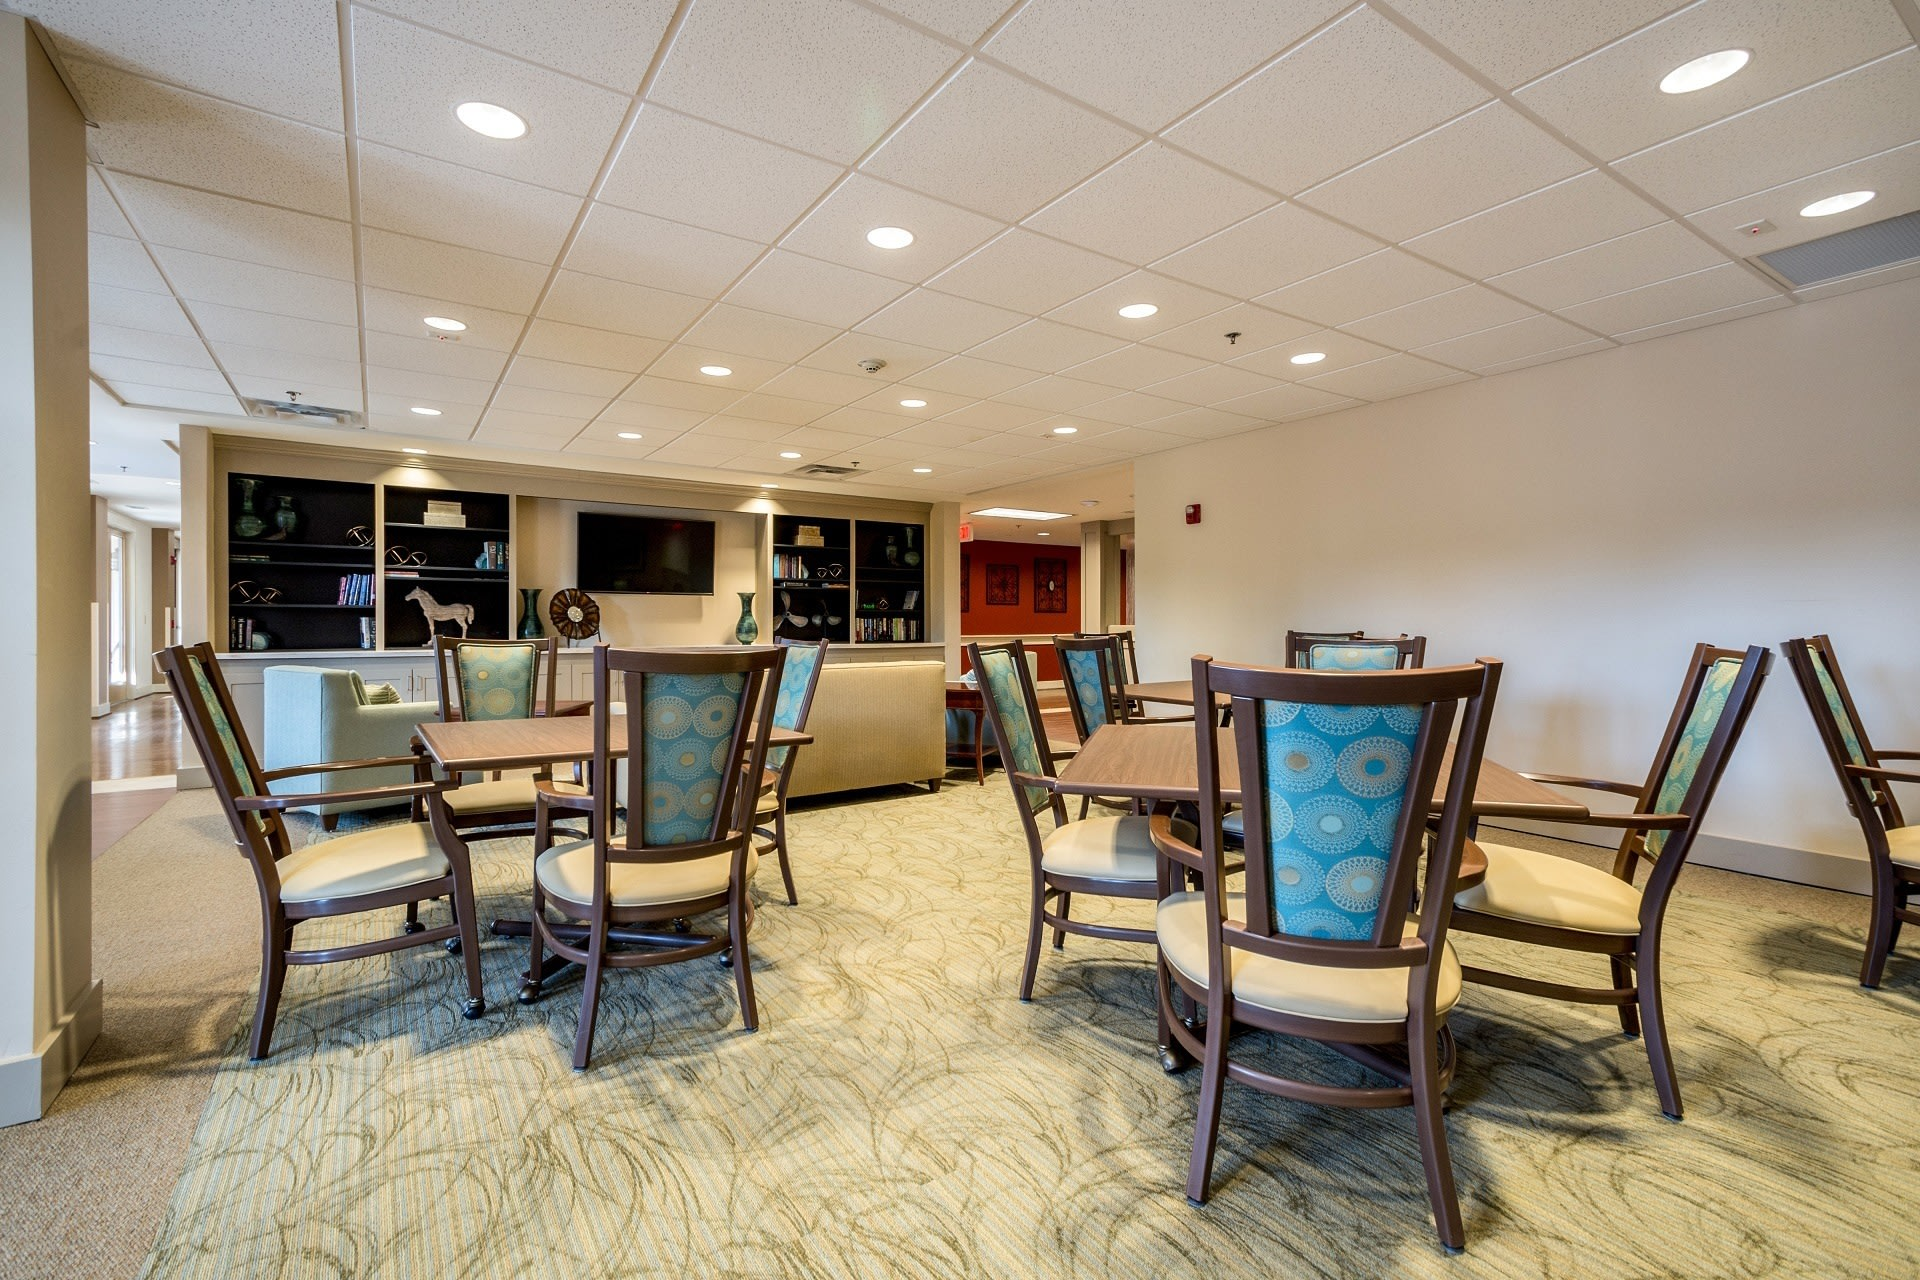 Suwanee senior living includes a game room